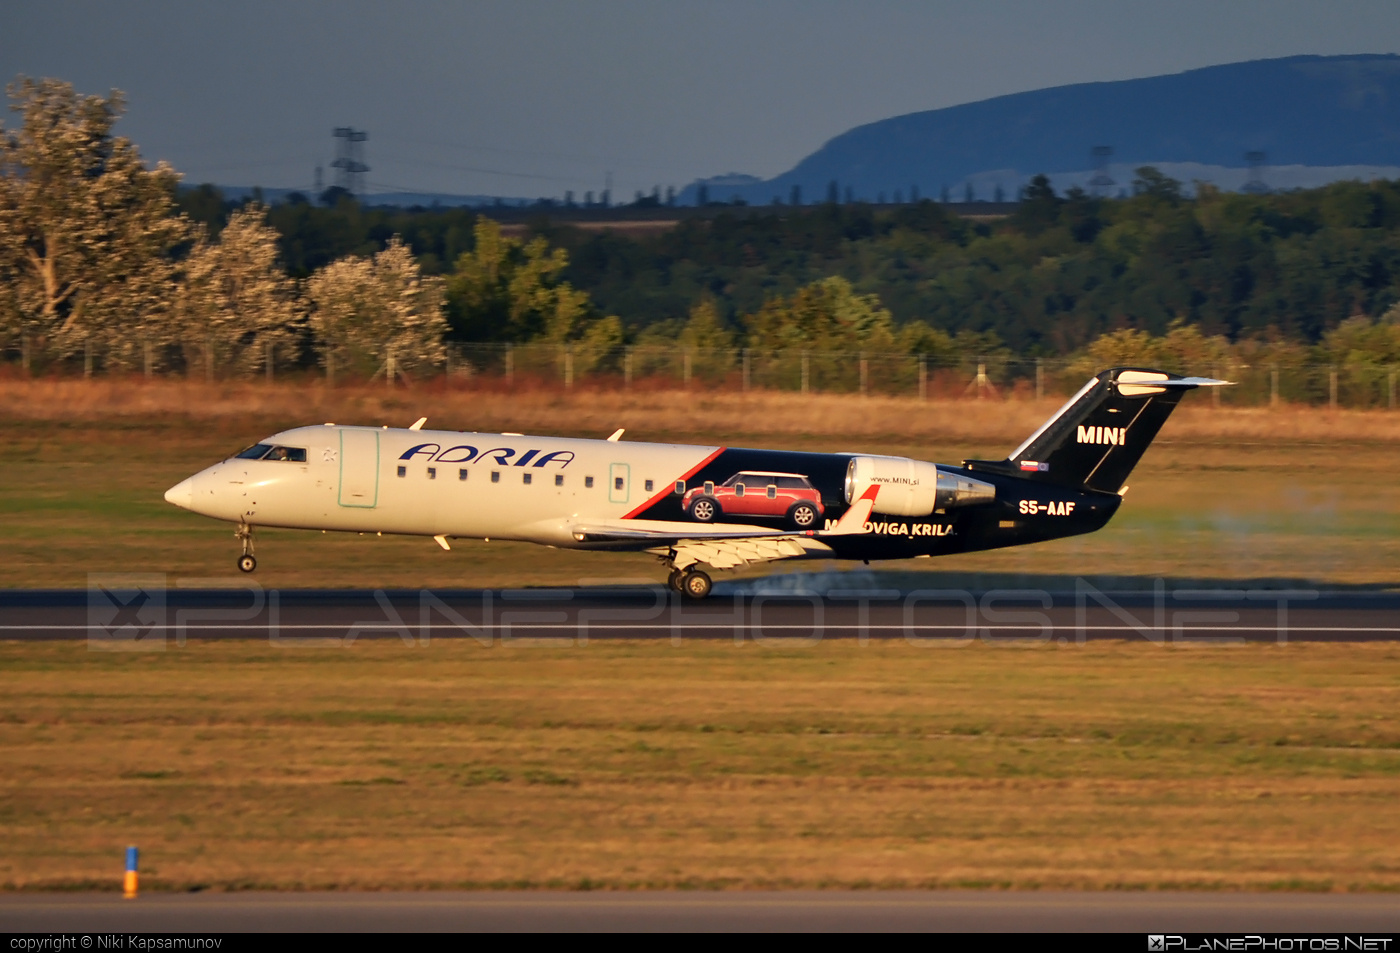 Bombardier CRJ200LR - S5-AAF operated by Adria Airways #bombardier #crj200 #crj200lr